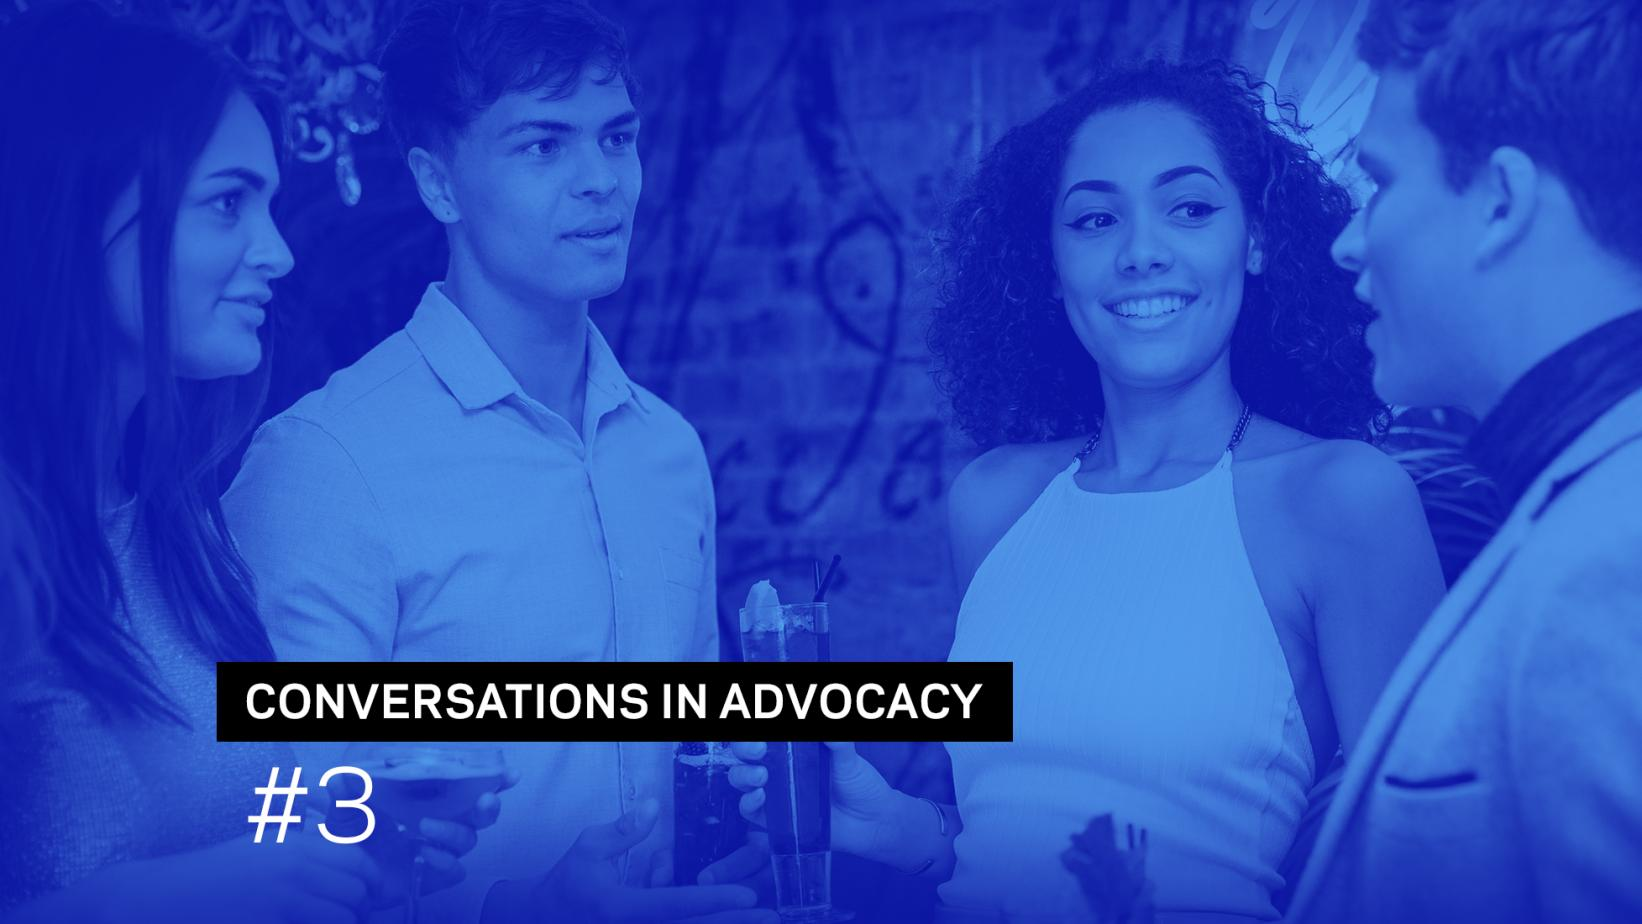 Conversations in Advocacy #3